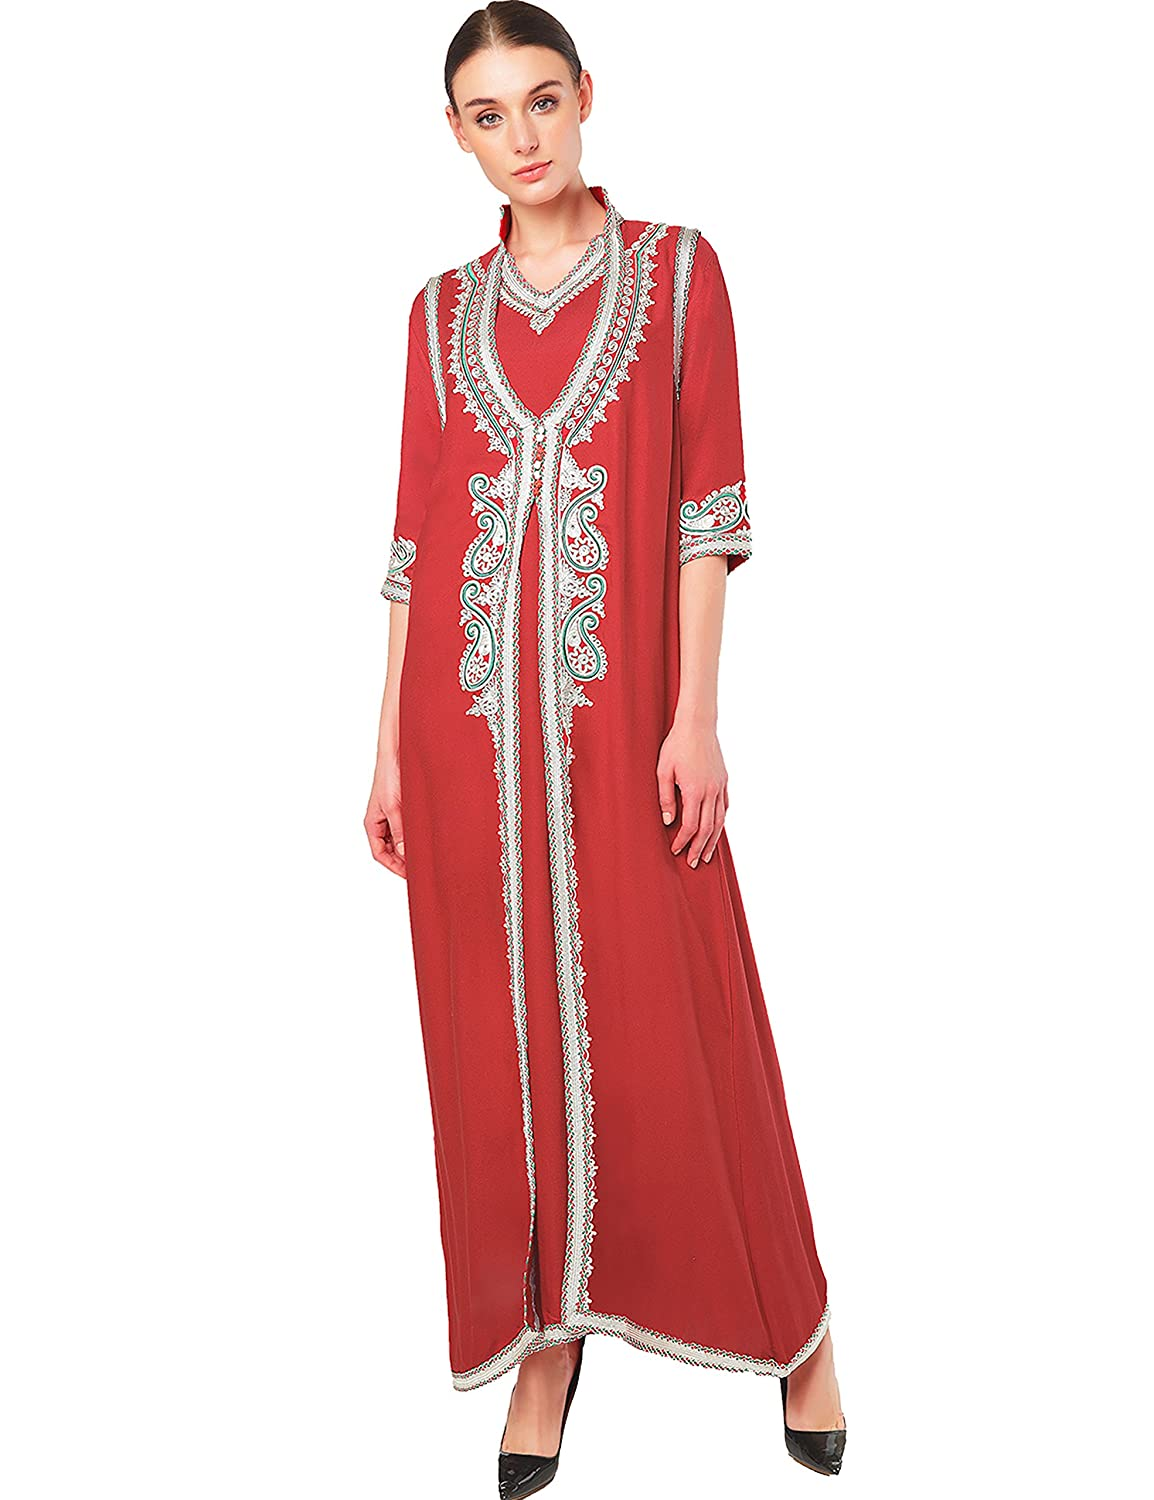 Muslim Dress Dubai Kaftan for Women Half Sleeve Arabic Long Dress Abaya Islamic Clothing Girls Caftan Jalabiya 2pcs